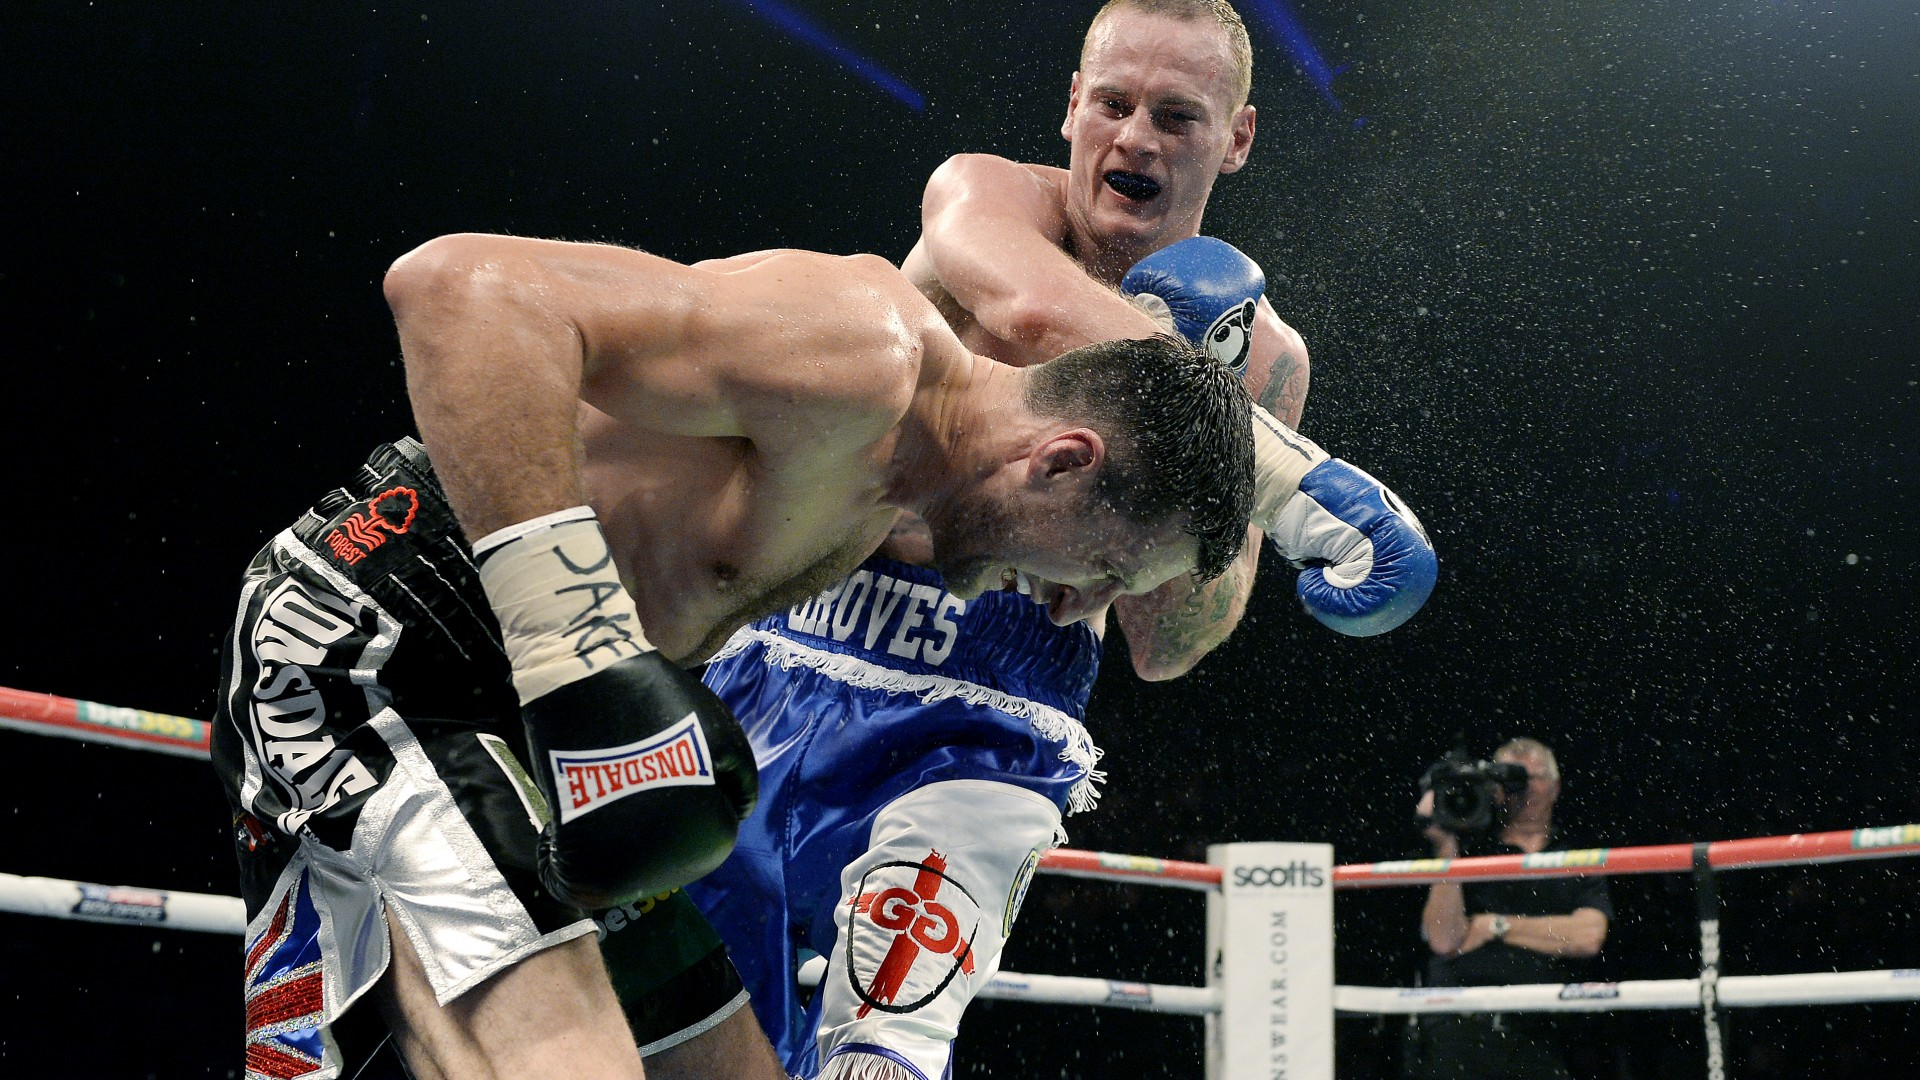 Carl Froch vs George Groves